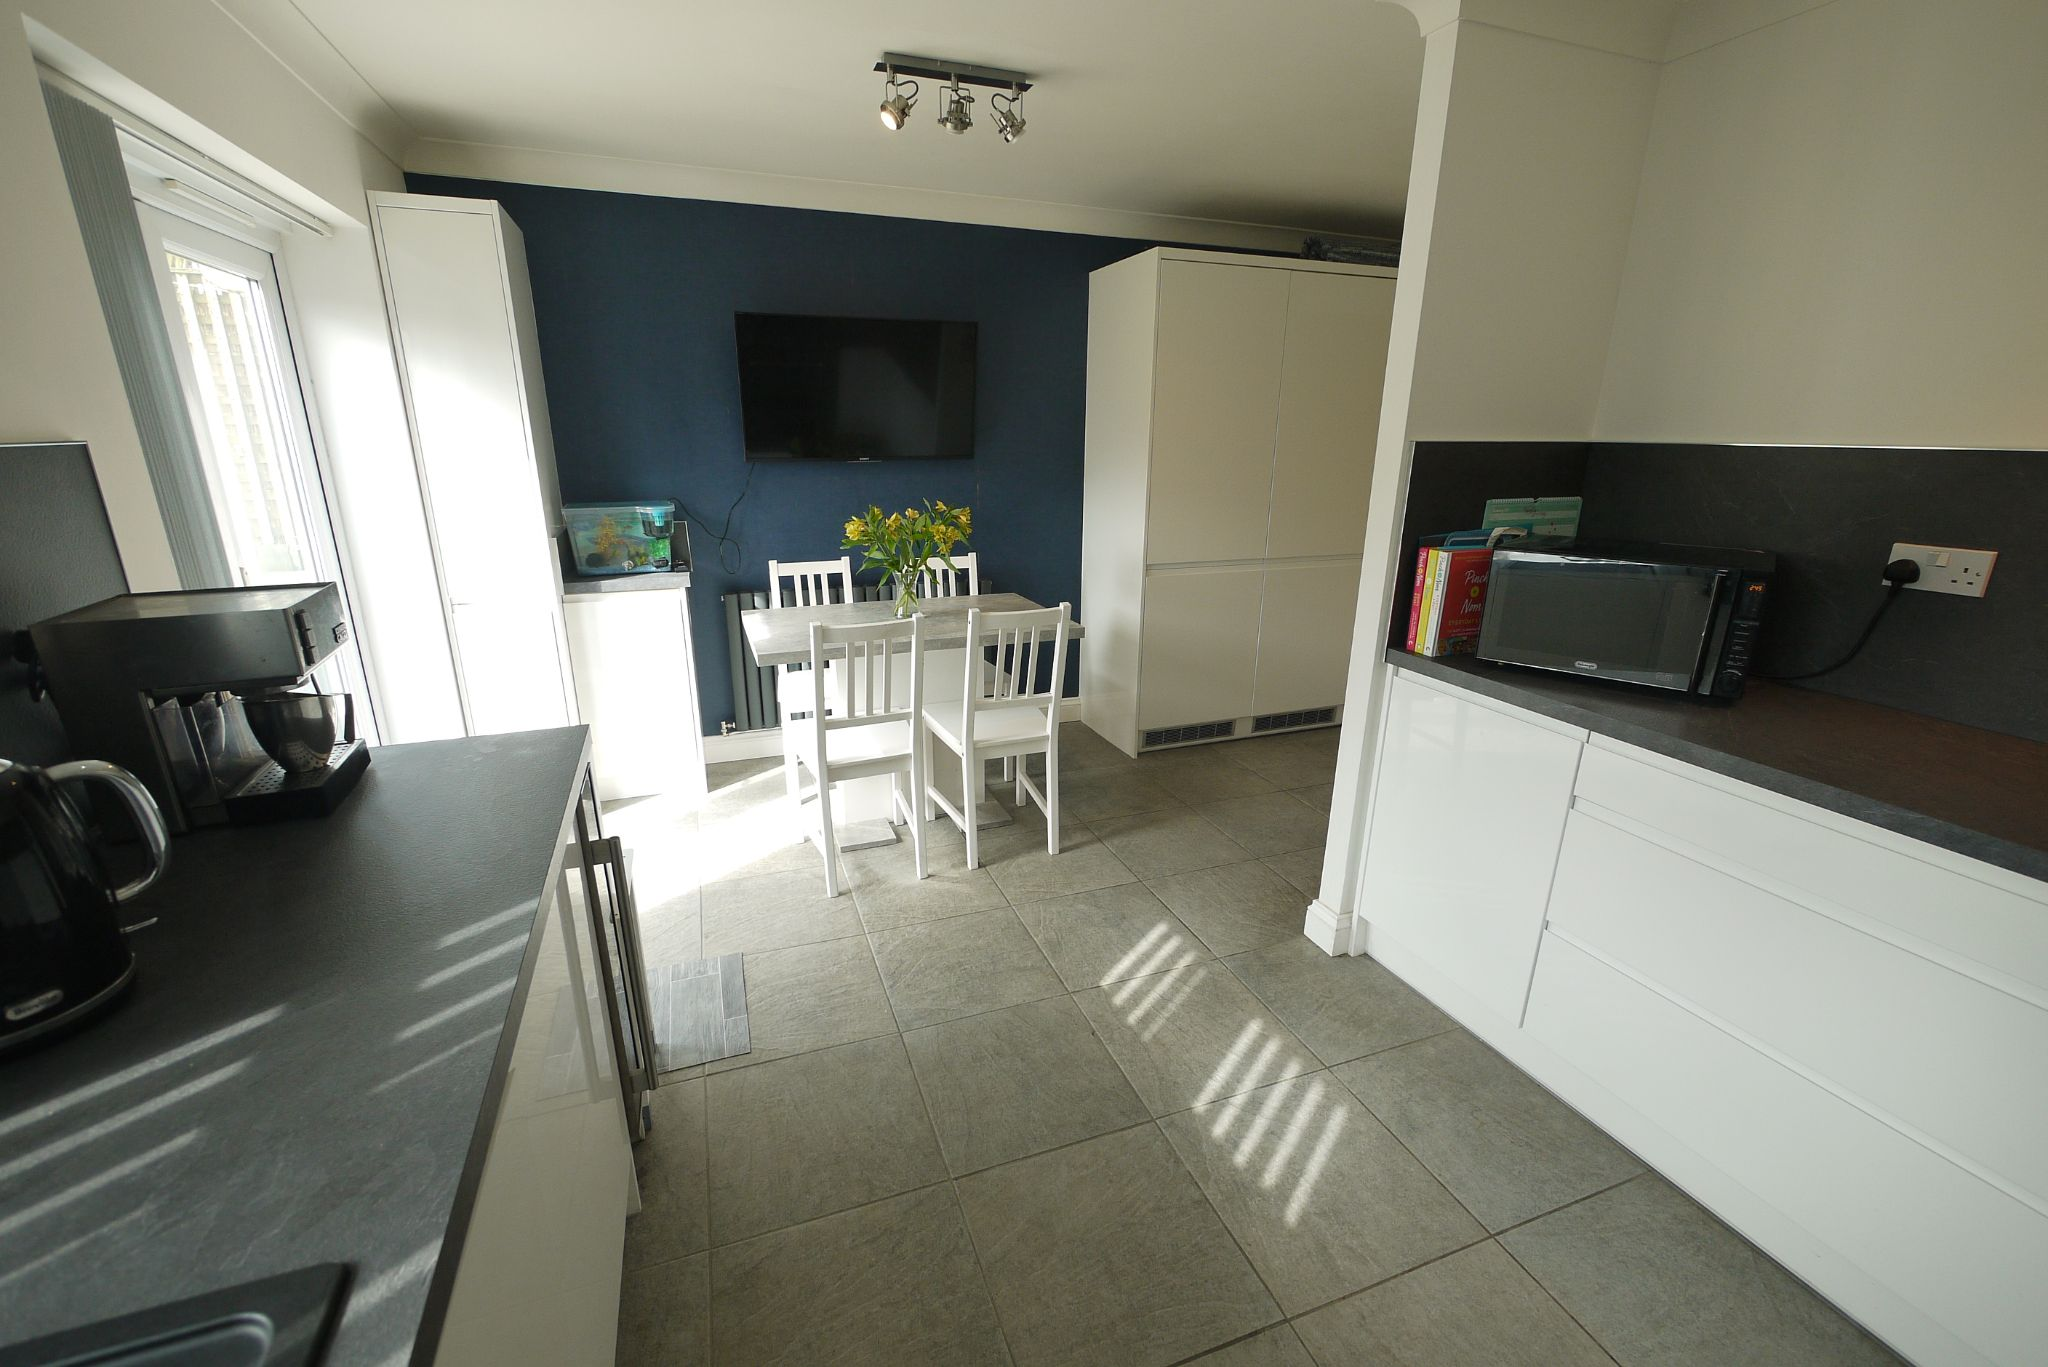 4 bedroom town house SSTC in Brighouse - Kitchen 2.